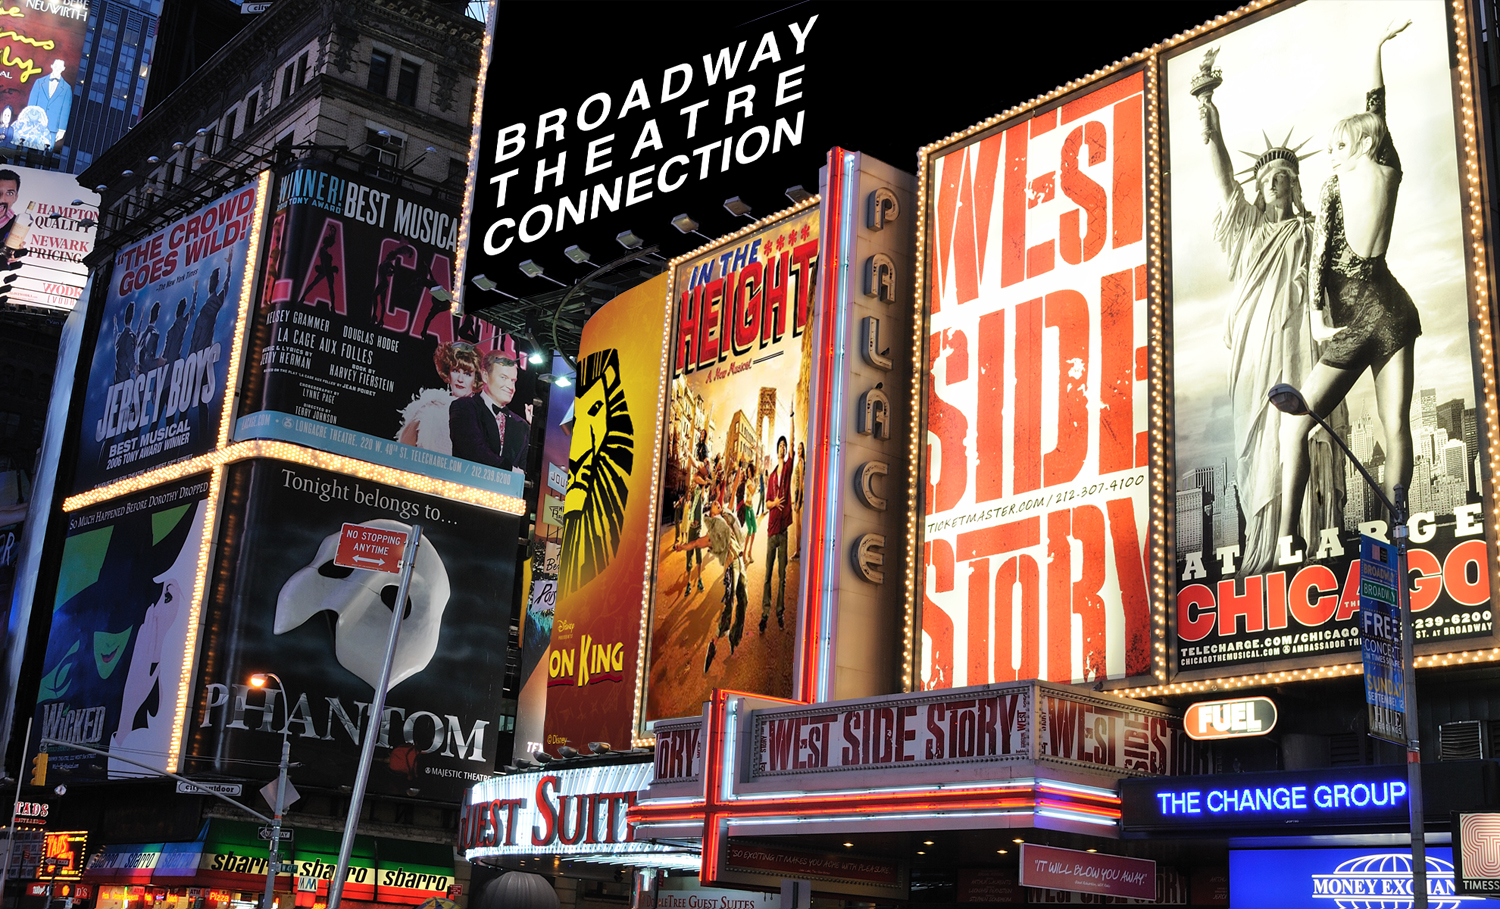 Broadway Theatre Connection